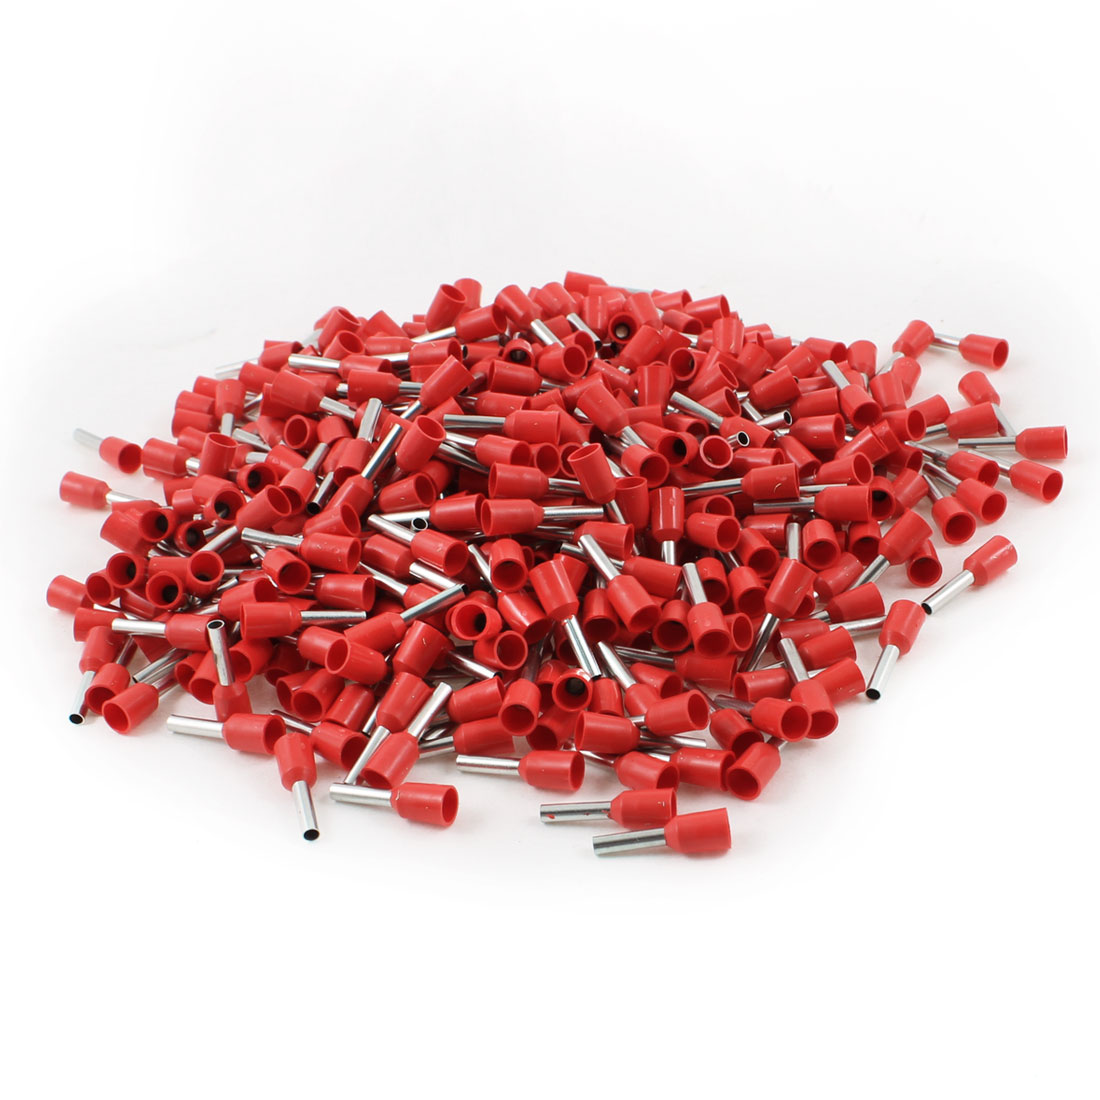 AWG 16 Wire Copper Insulated Tube Head 8mm Long Pin Terminal Red 1000Pcs